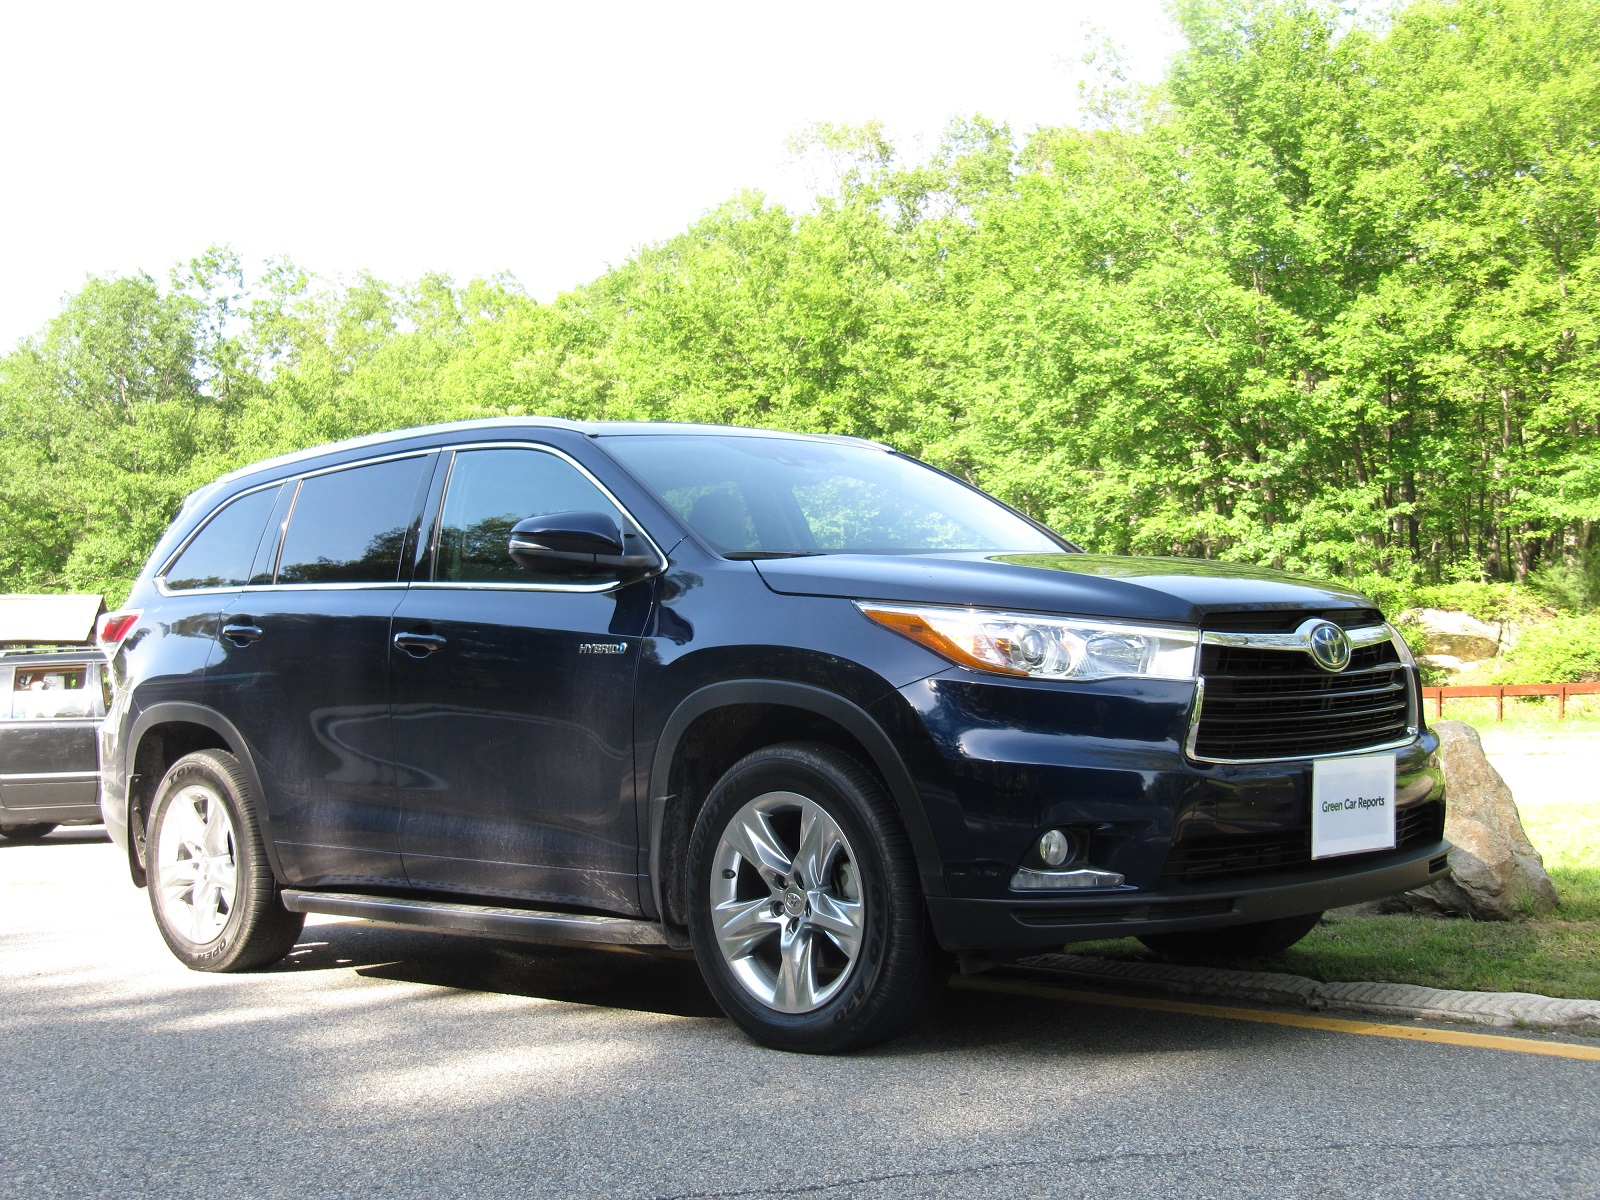 2014 toyota highlander hybrid gas mileage review. Black Bedroom Furniture Sets. Home Design Ideas